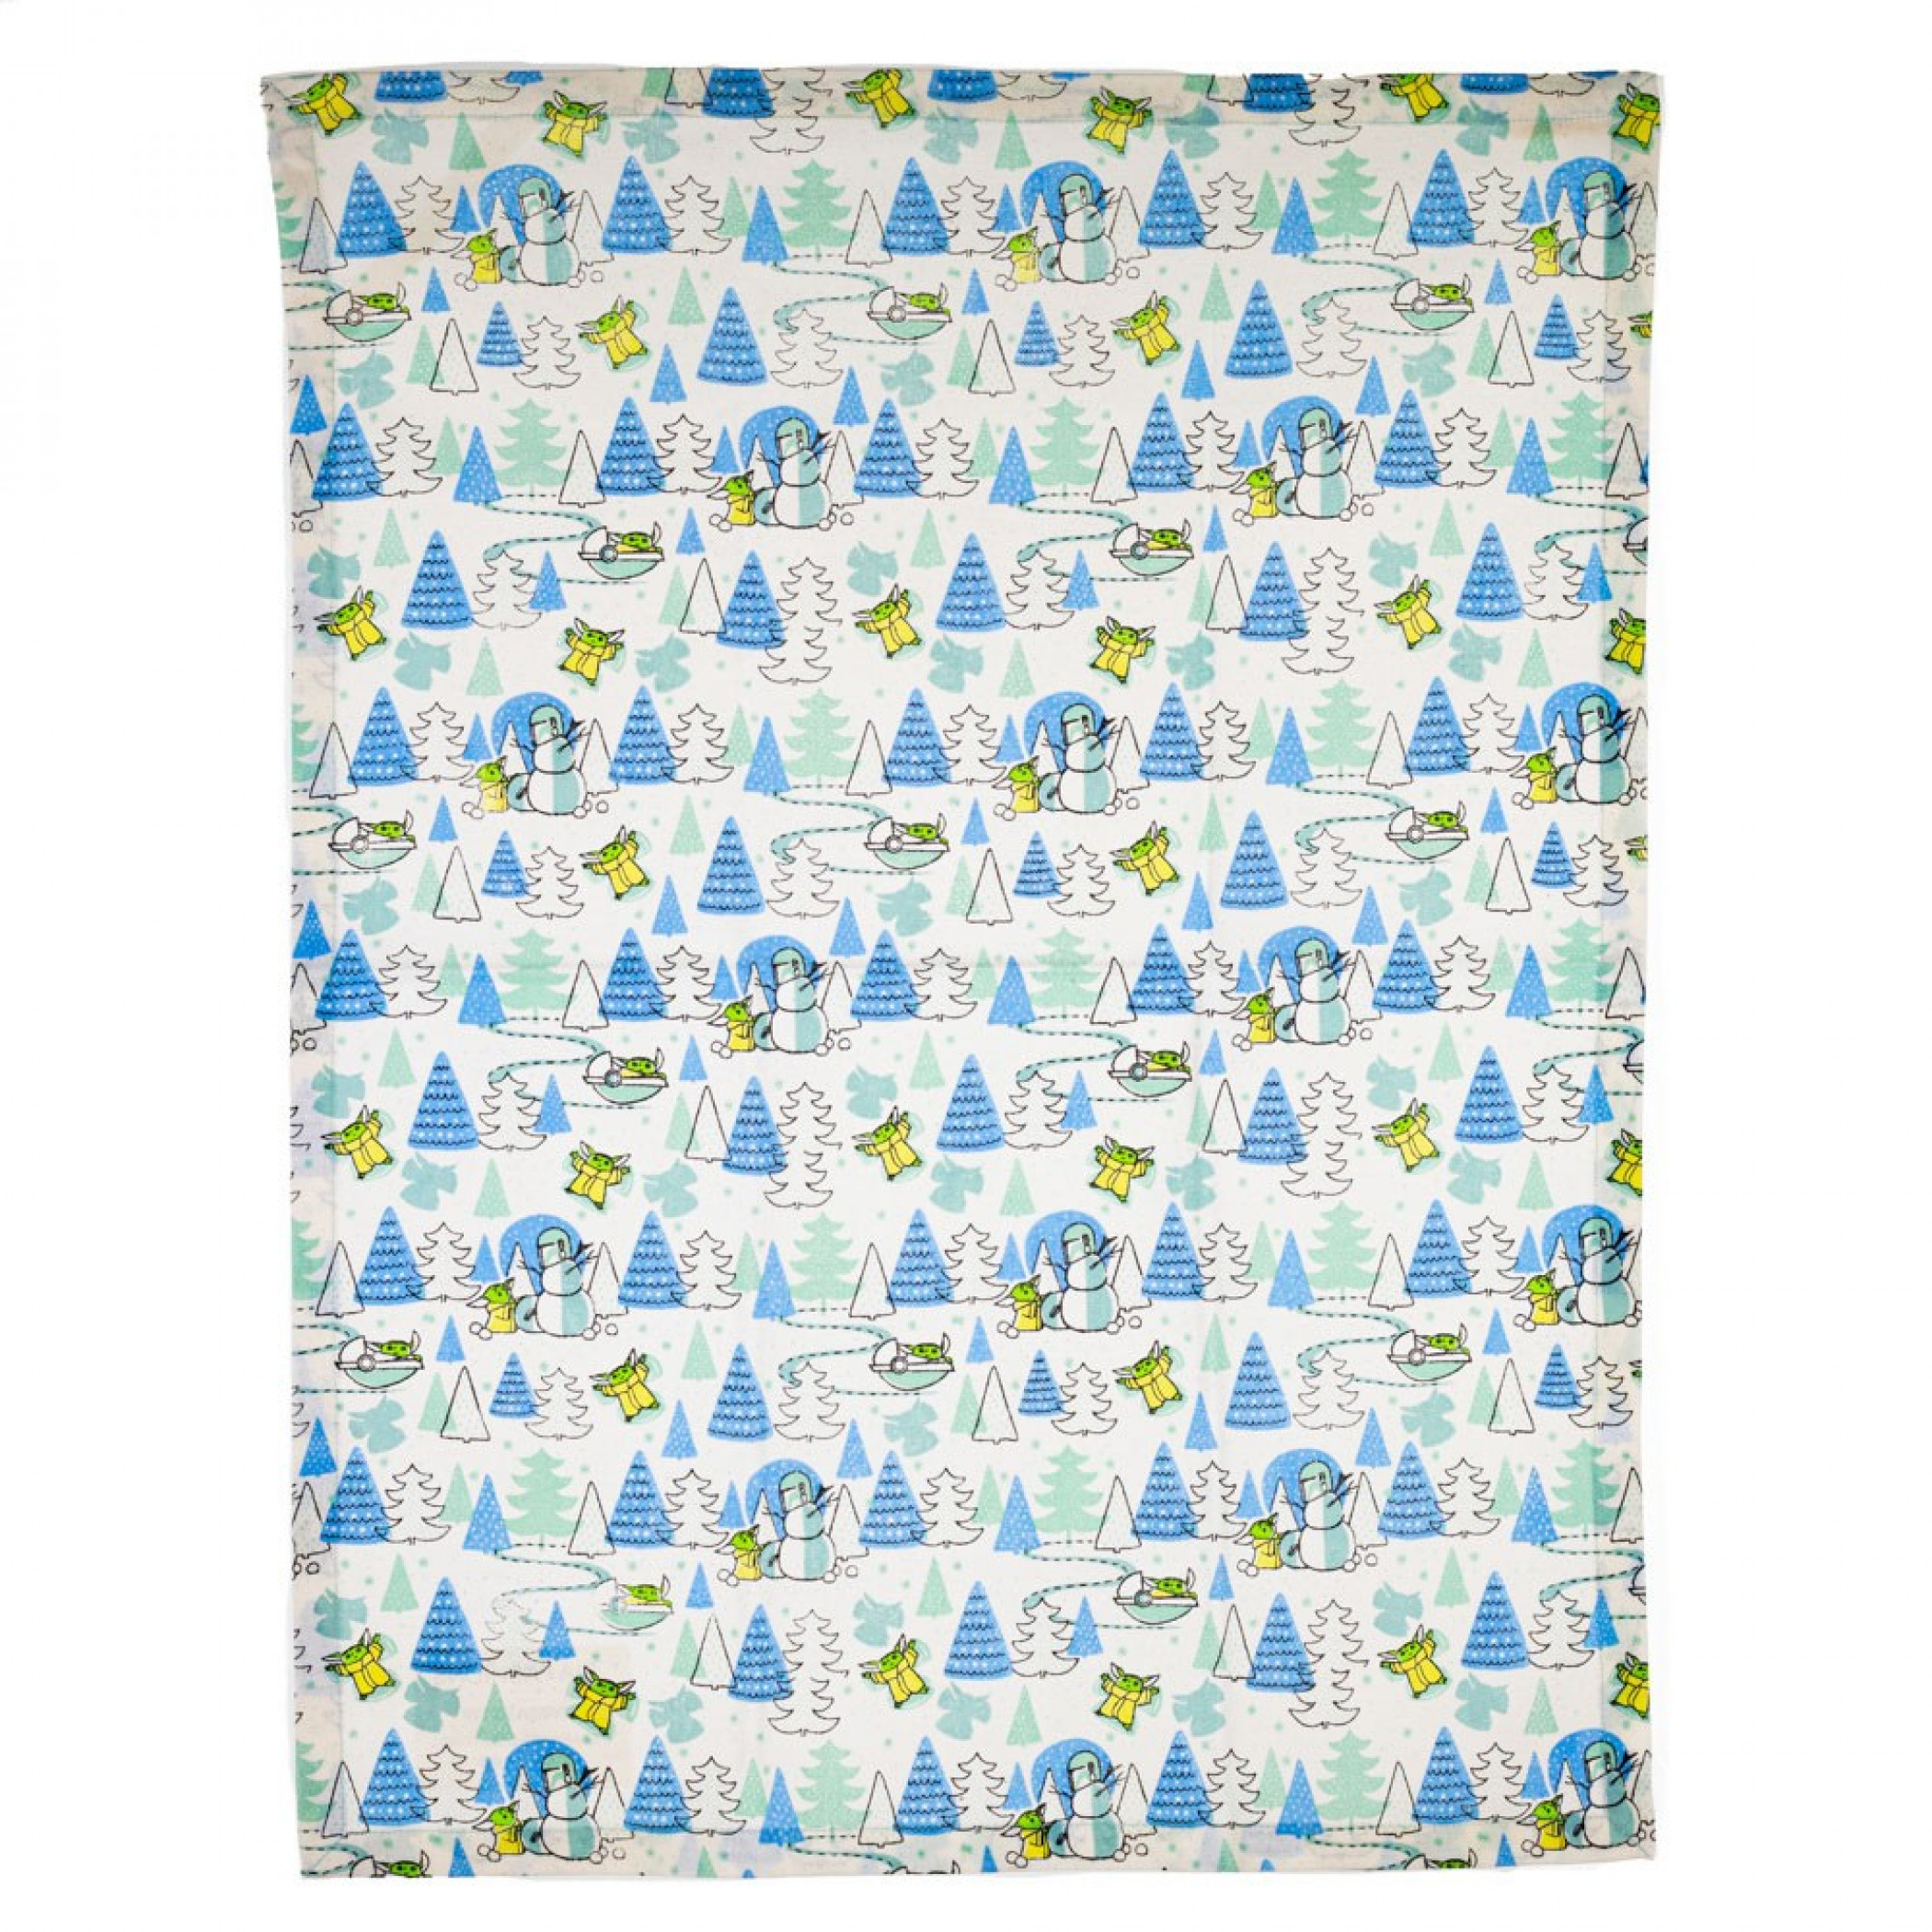 Star Wars Mandalorian The Child Character and Trees All Over Tea Towel